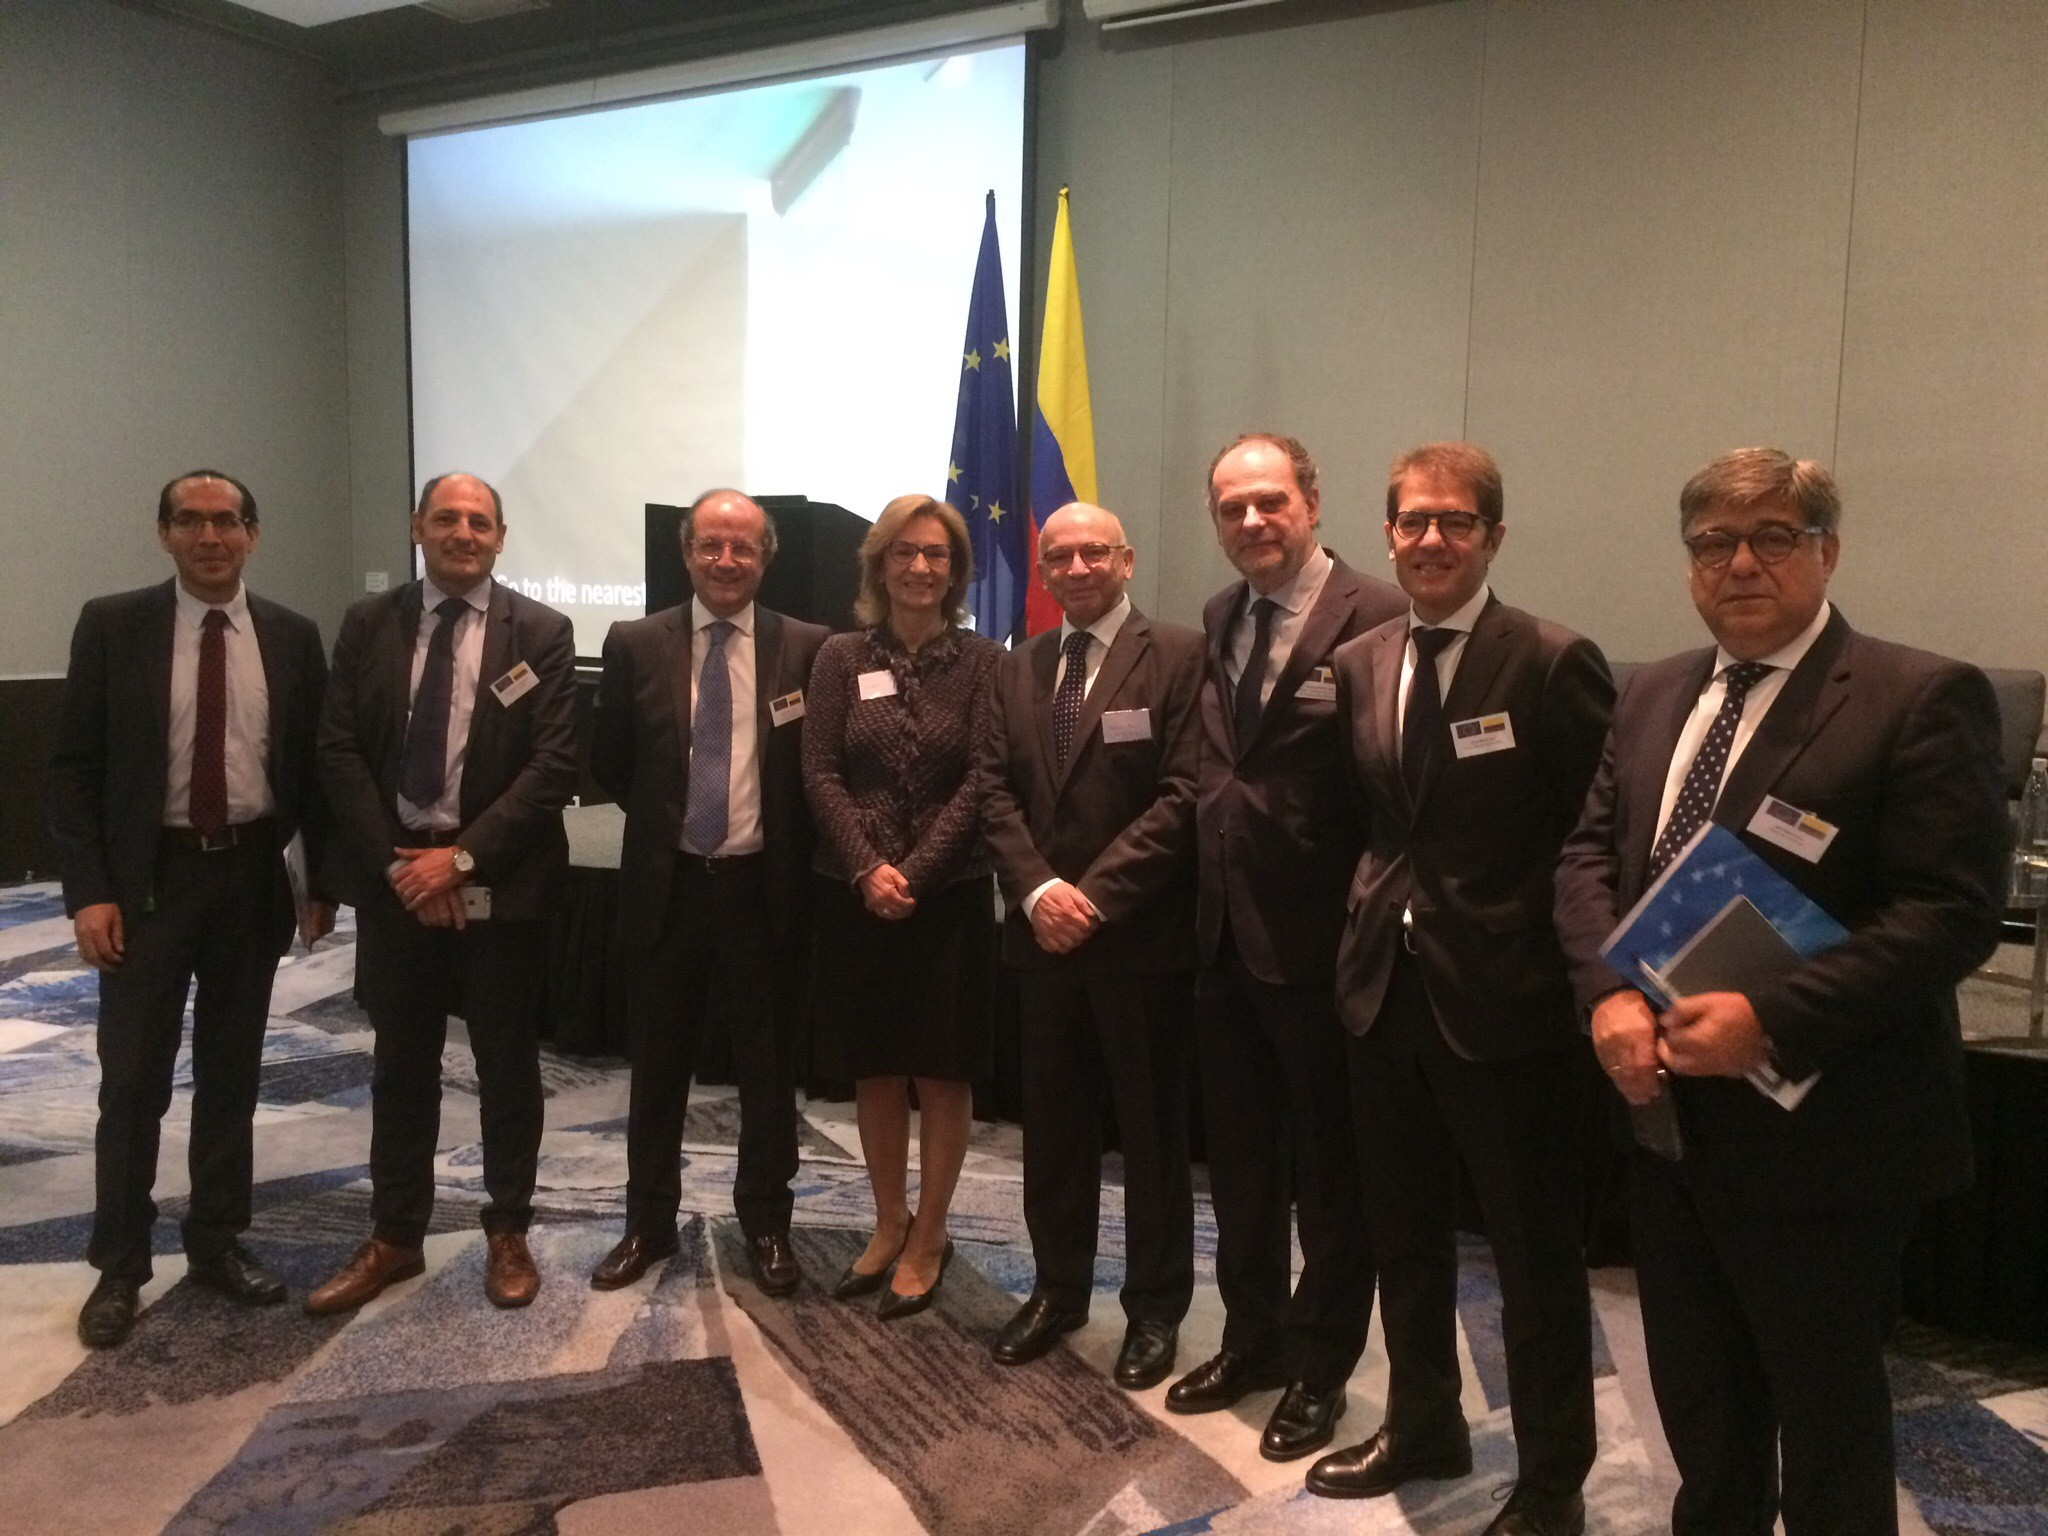 Emgrisa participated with 40 EU companies in the Circular Economy Mission to Colombia